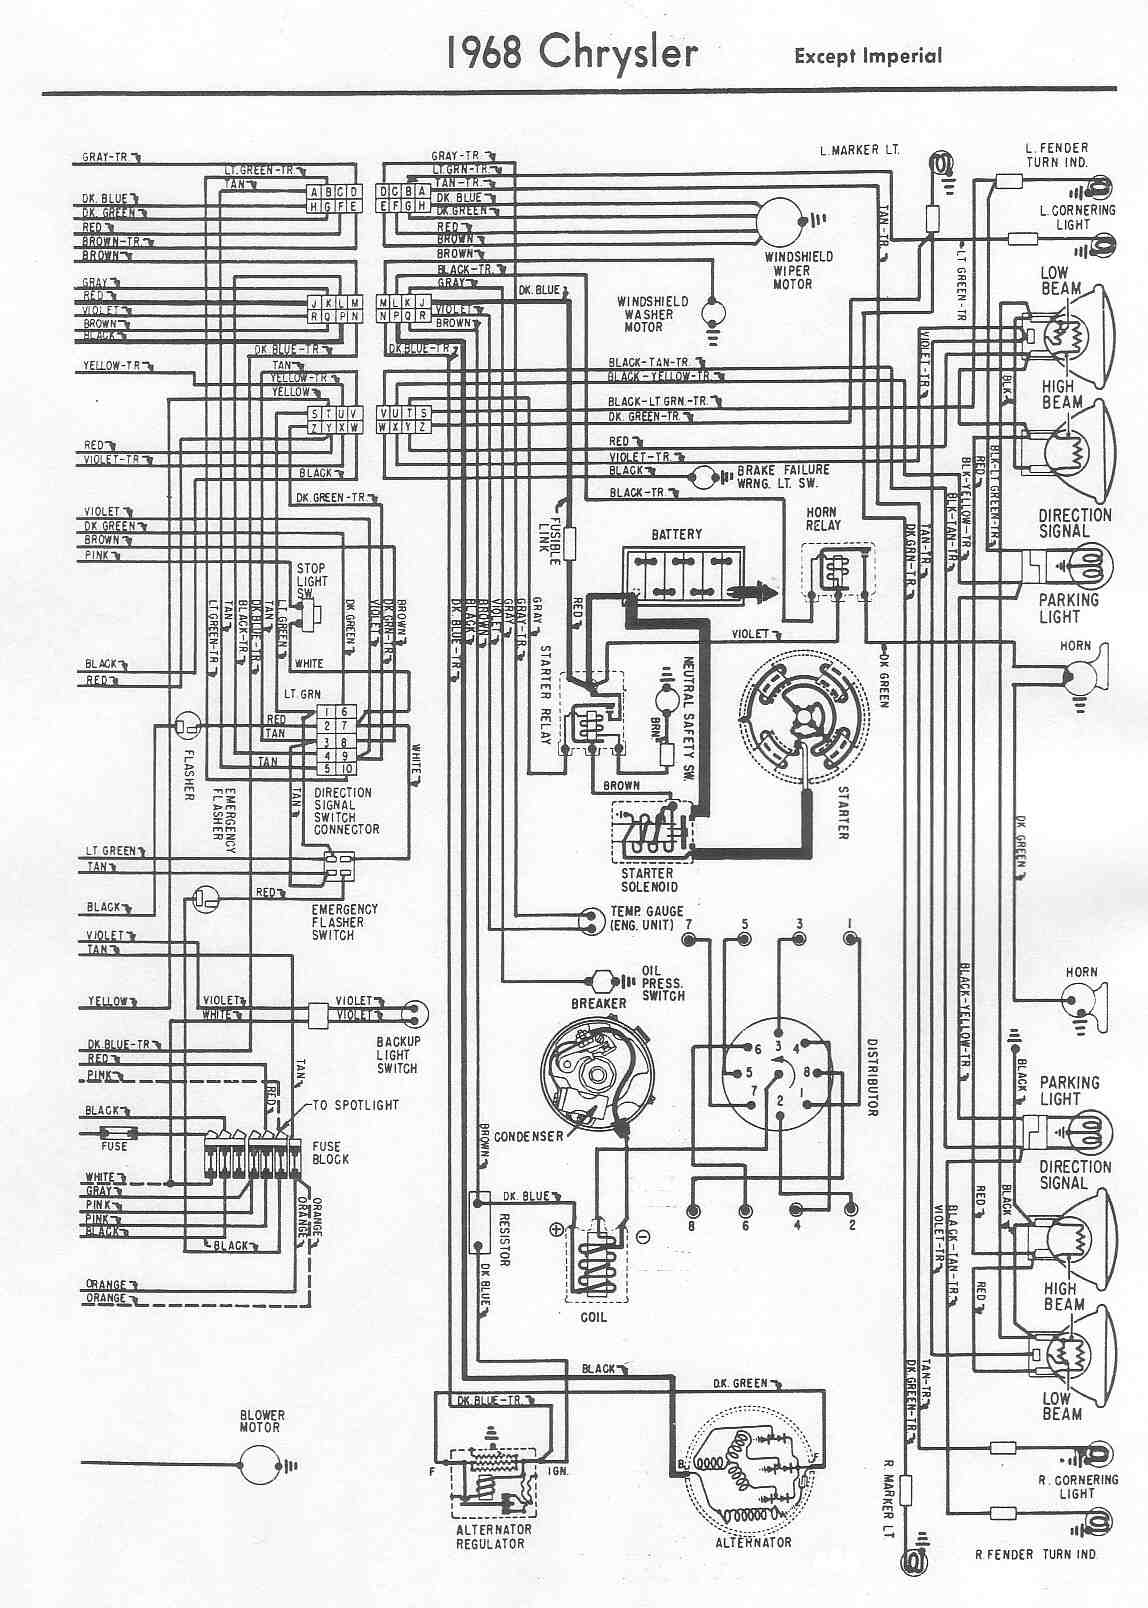 chrysler car manuals wiring diagrams pdf fault codes 1955 imperial 1951 chrysler new yorker [ 1148 x 1608 Pixel ]